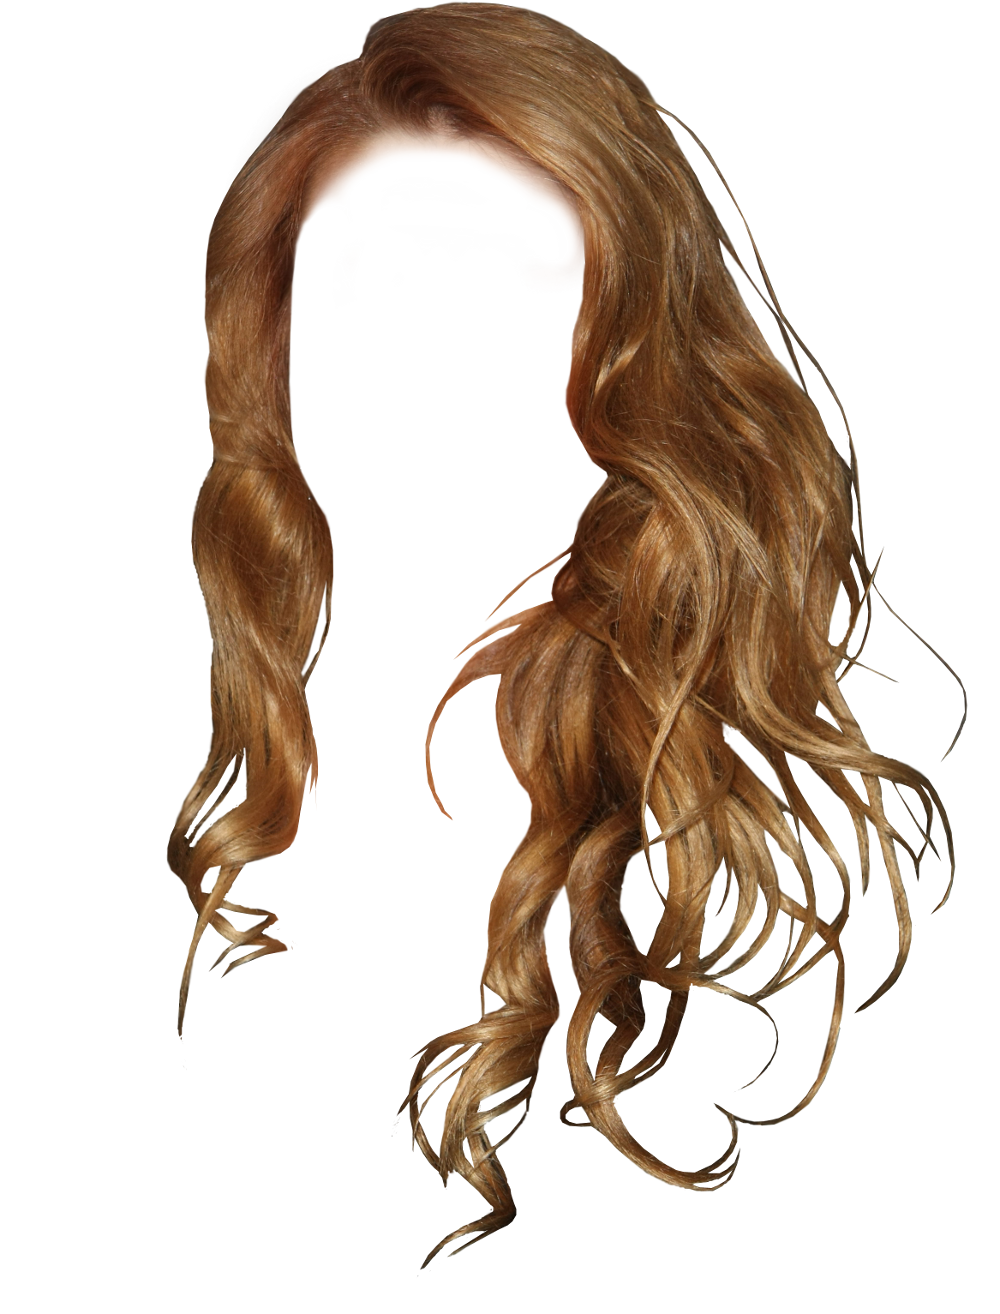 Hair cute outs png. Hairstyles transparent images all